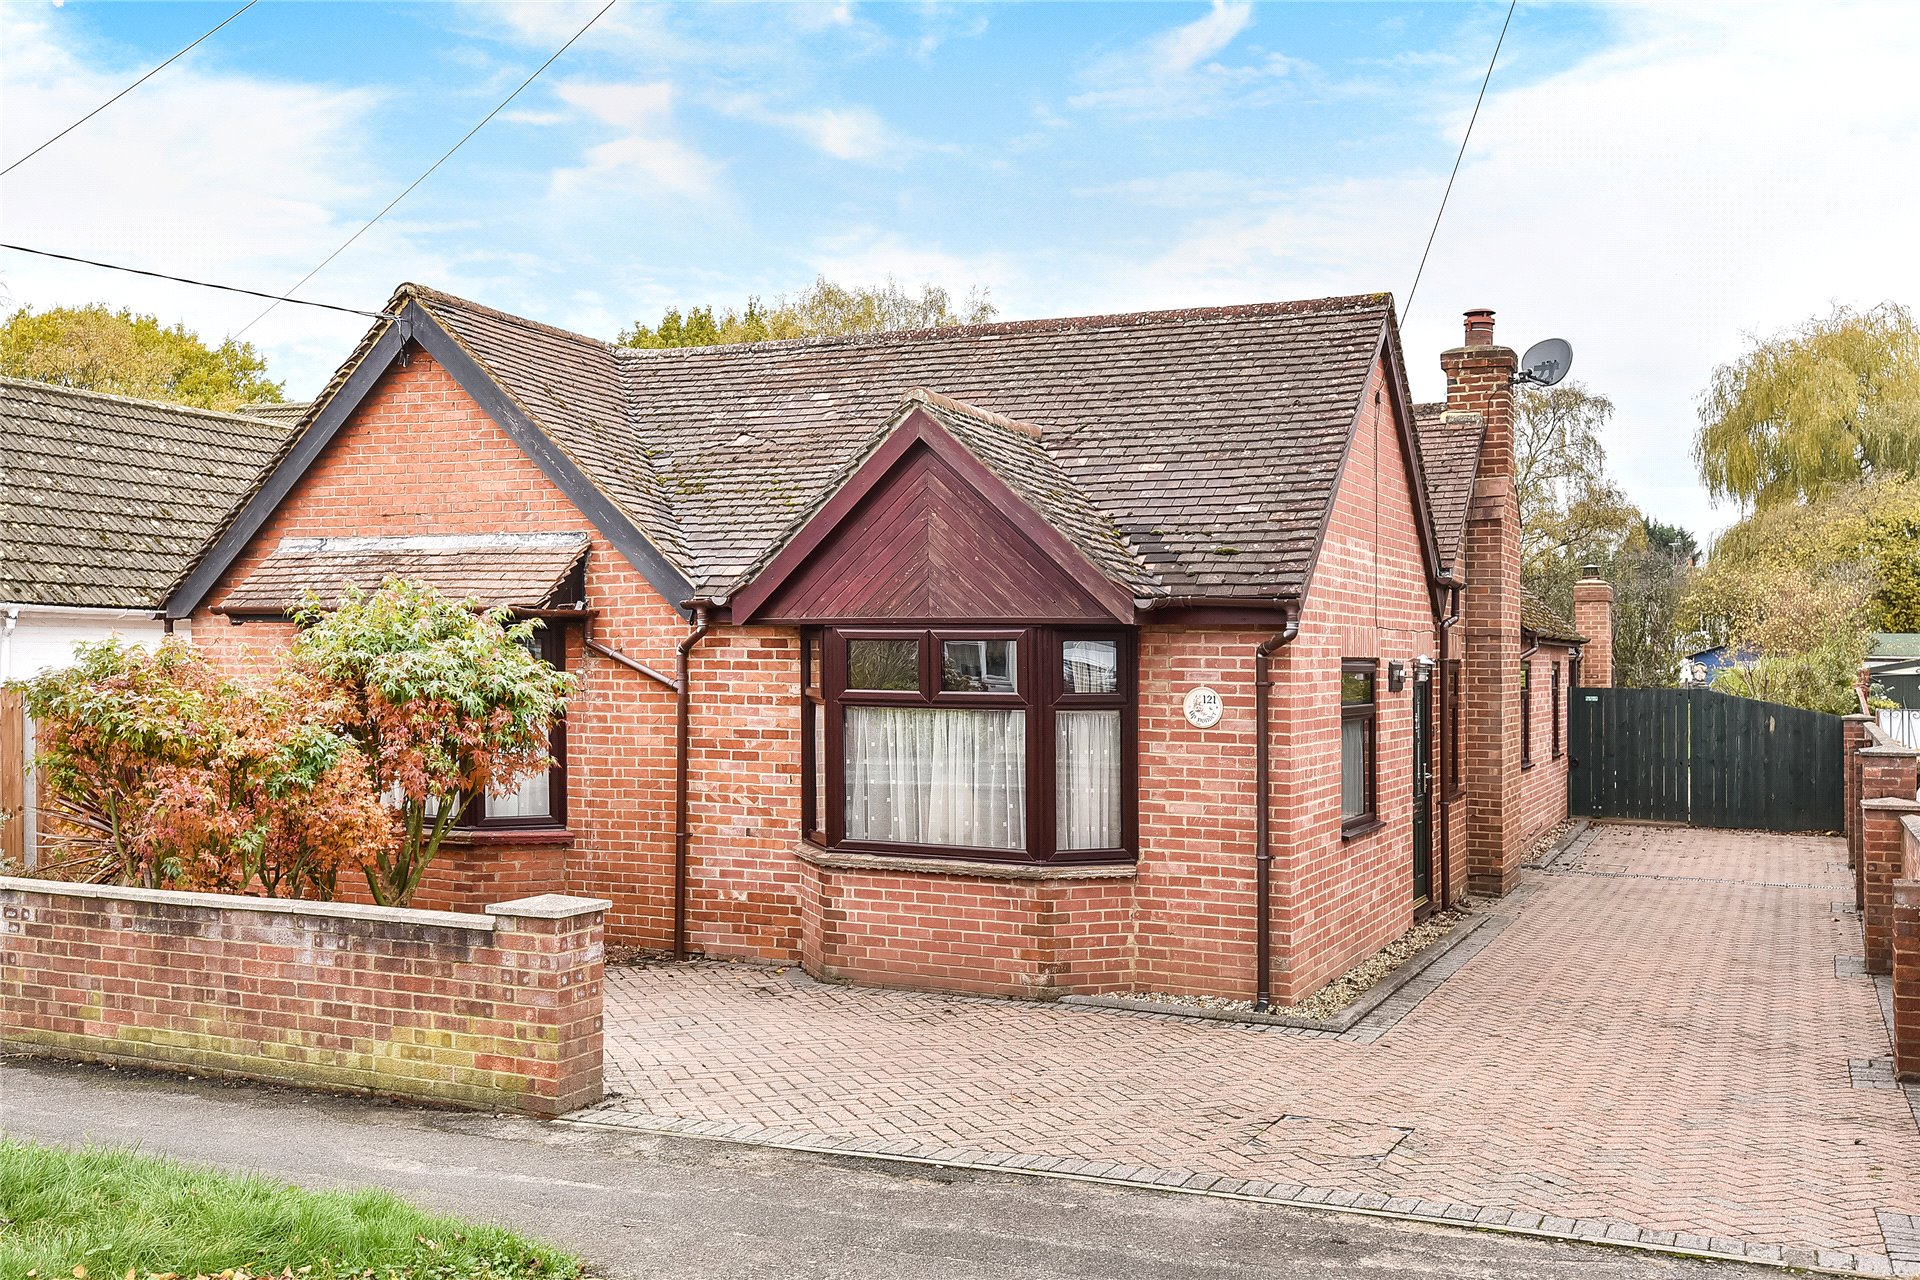 3 Bedrooms Detached Bungalow for sale in College Road, College Town, Sandhurst, Berkshire, GU47